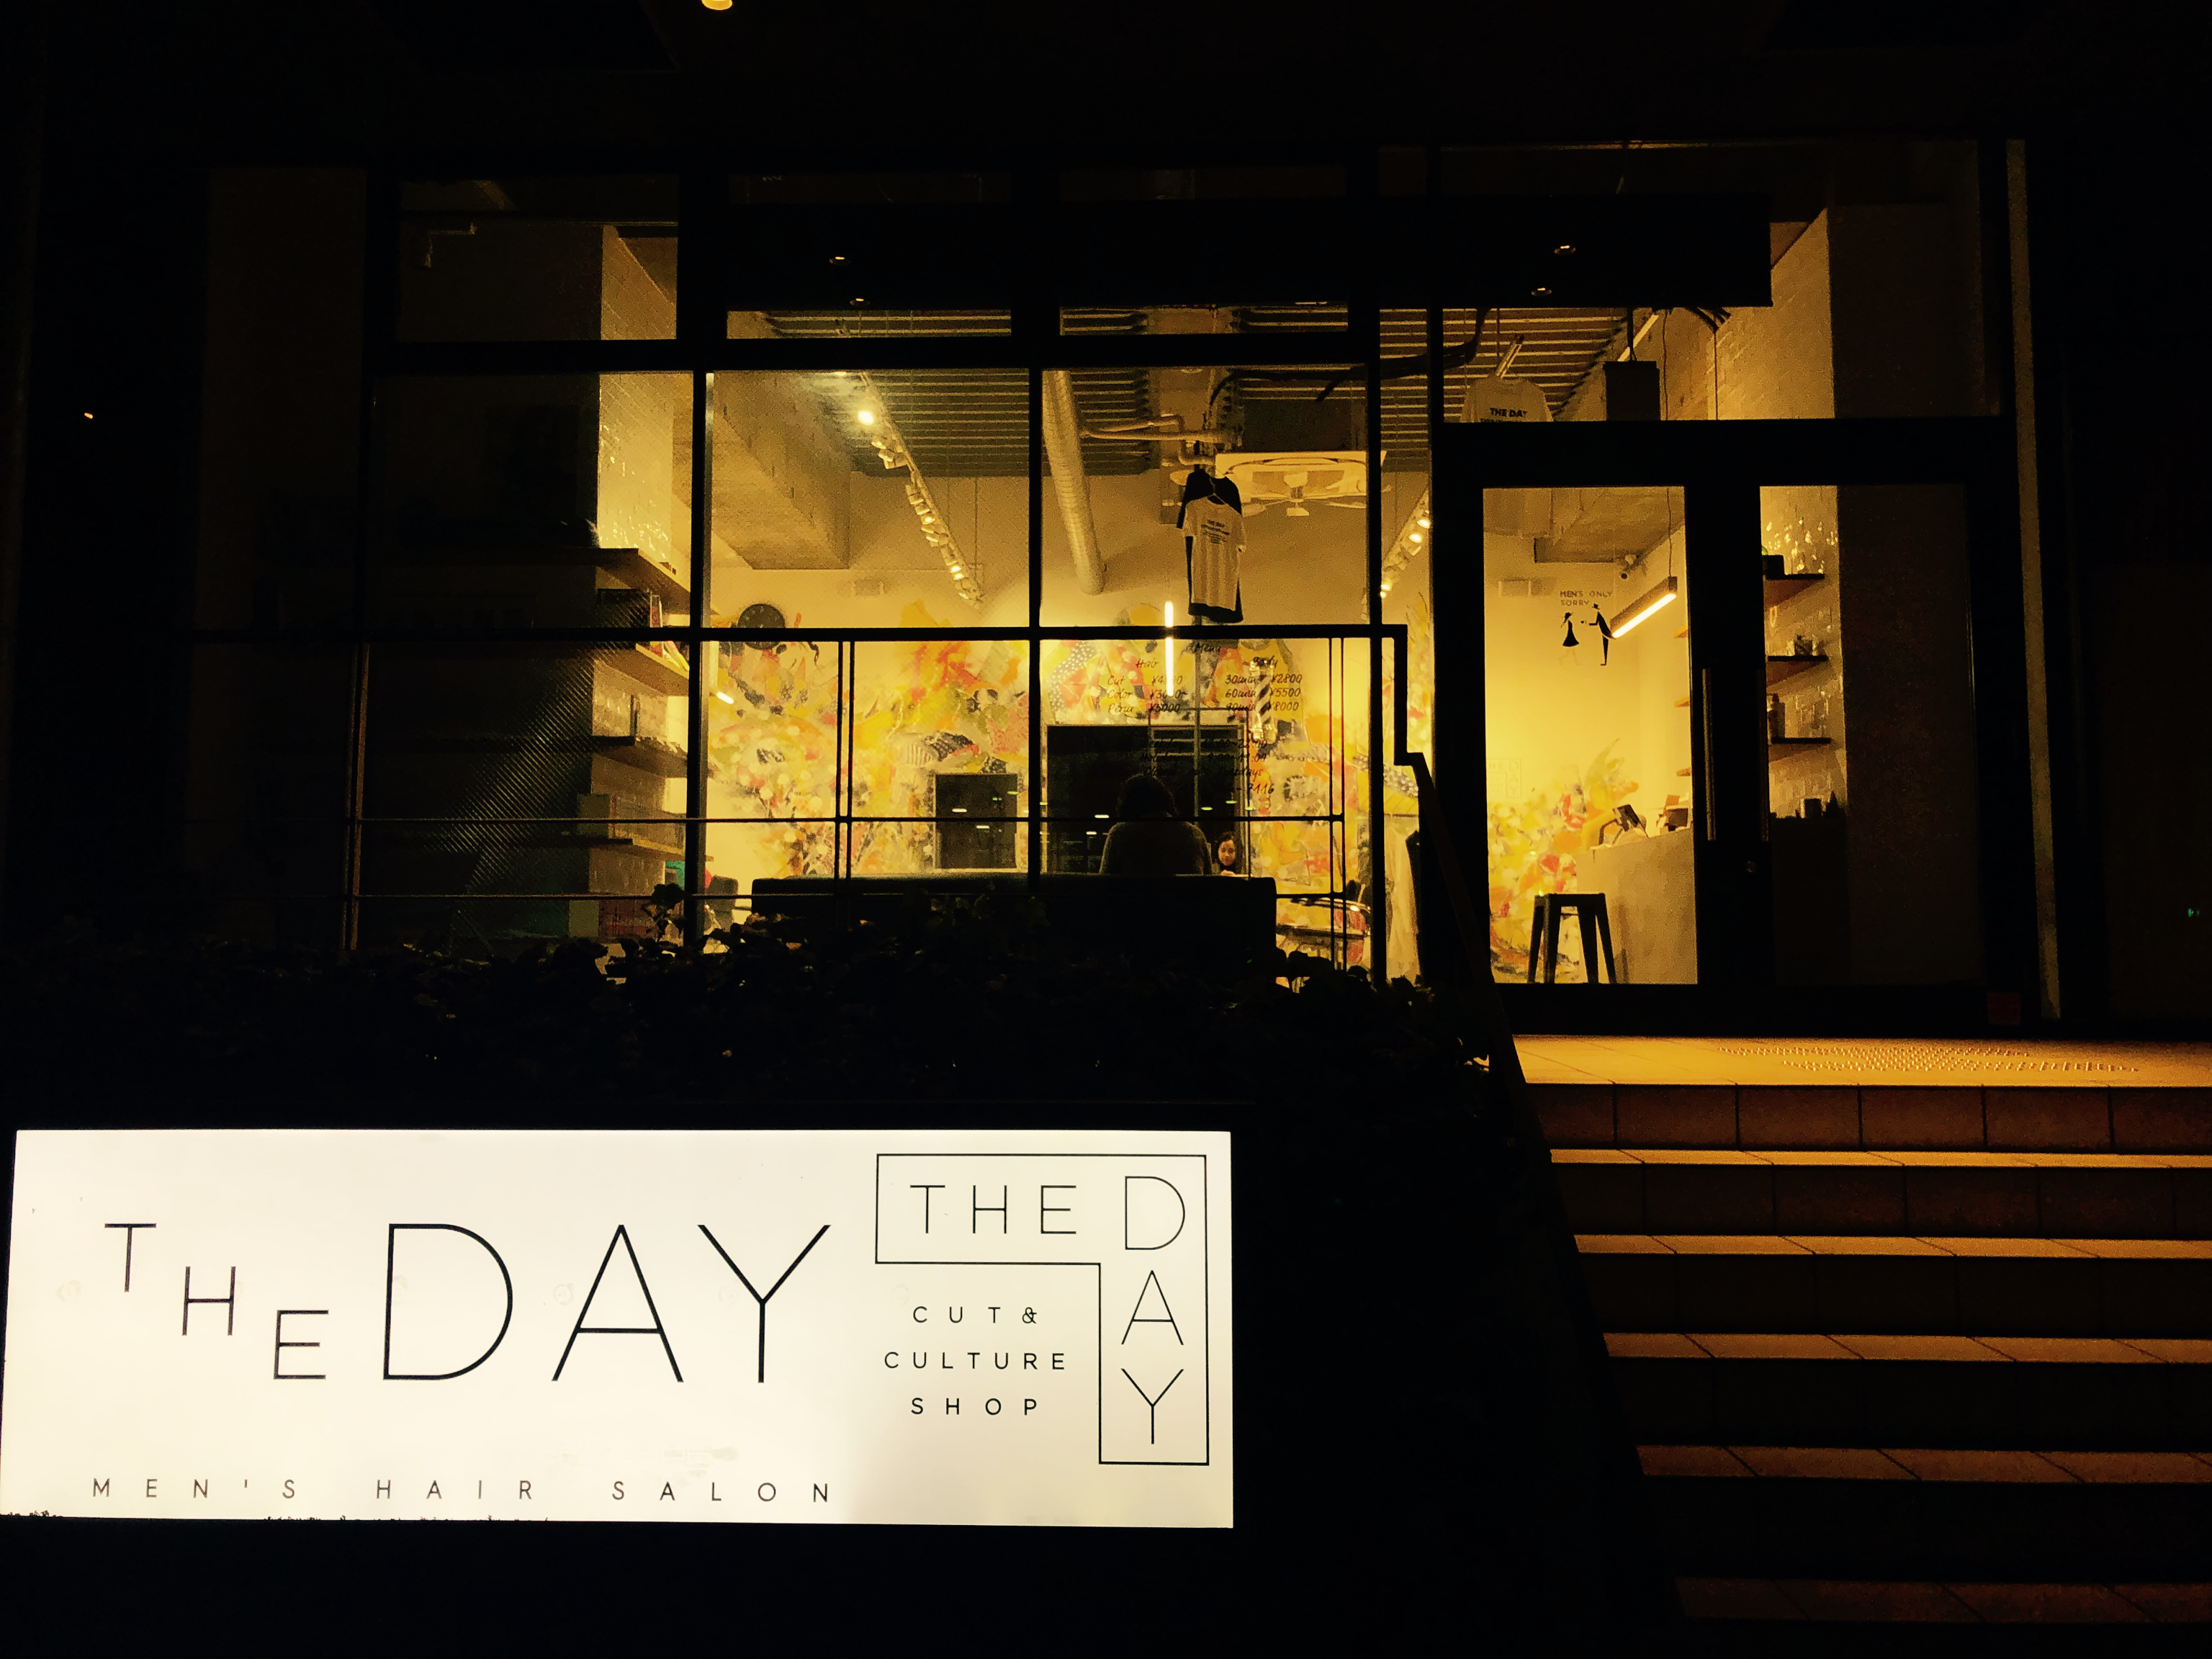 THE DAY CUT&CULTURE SHOP